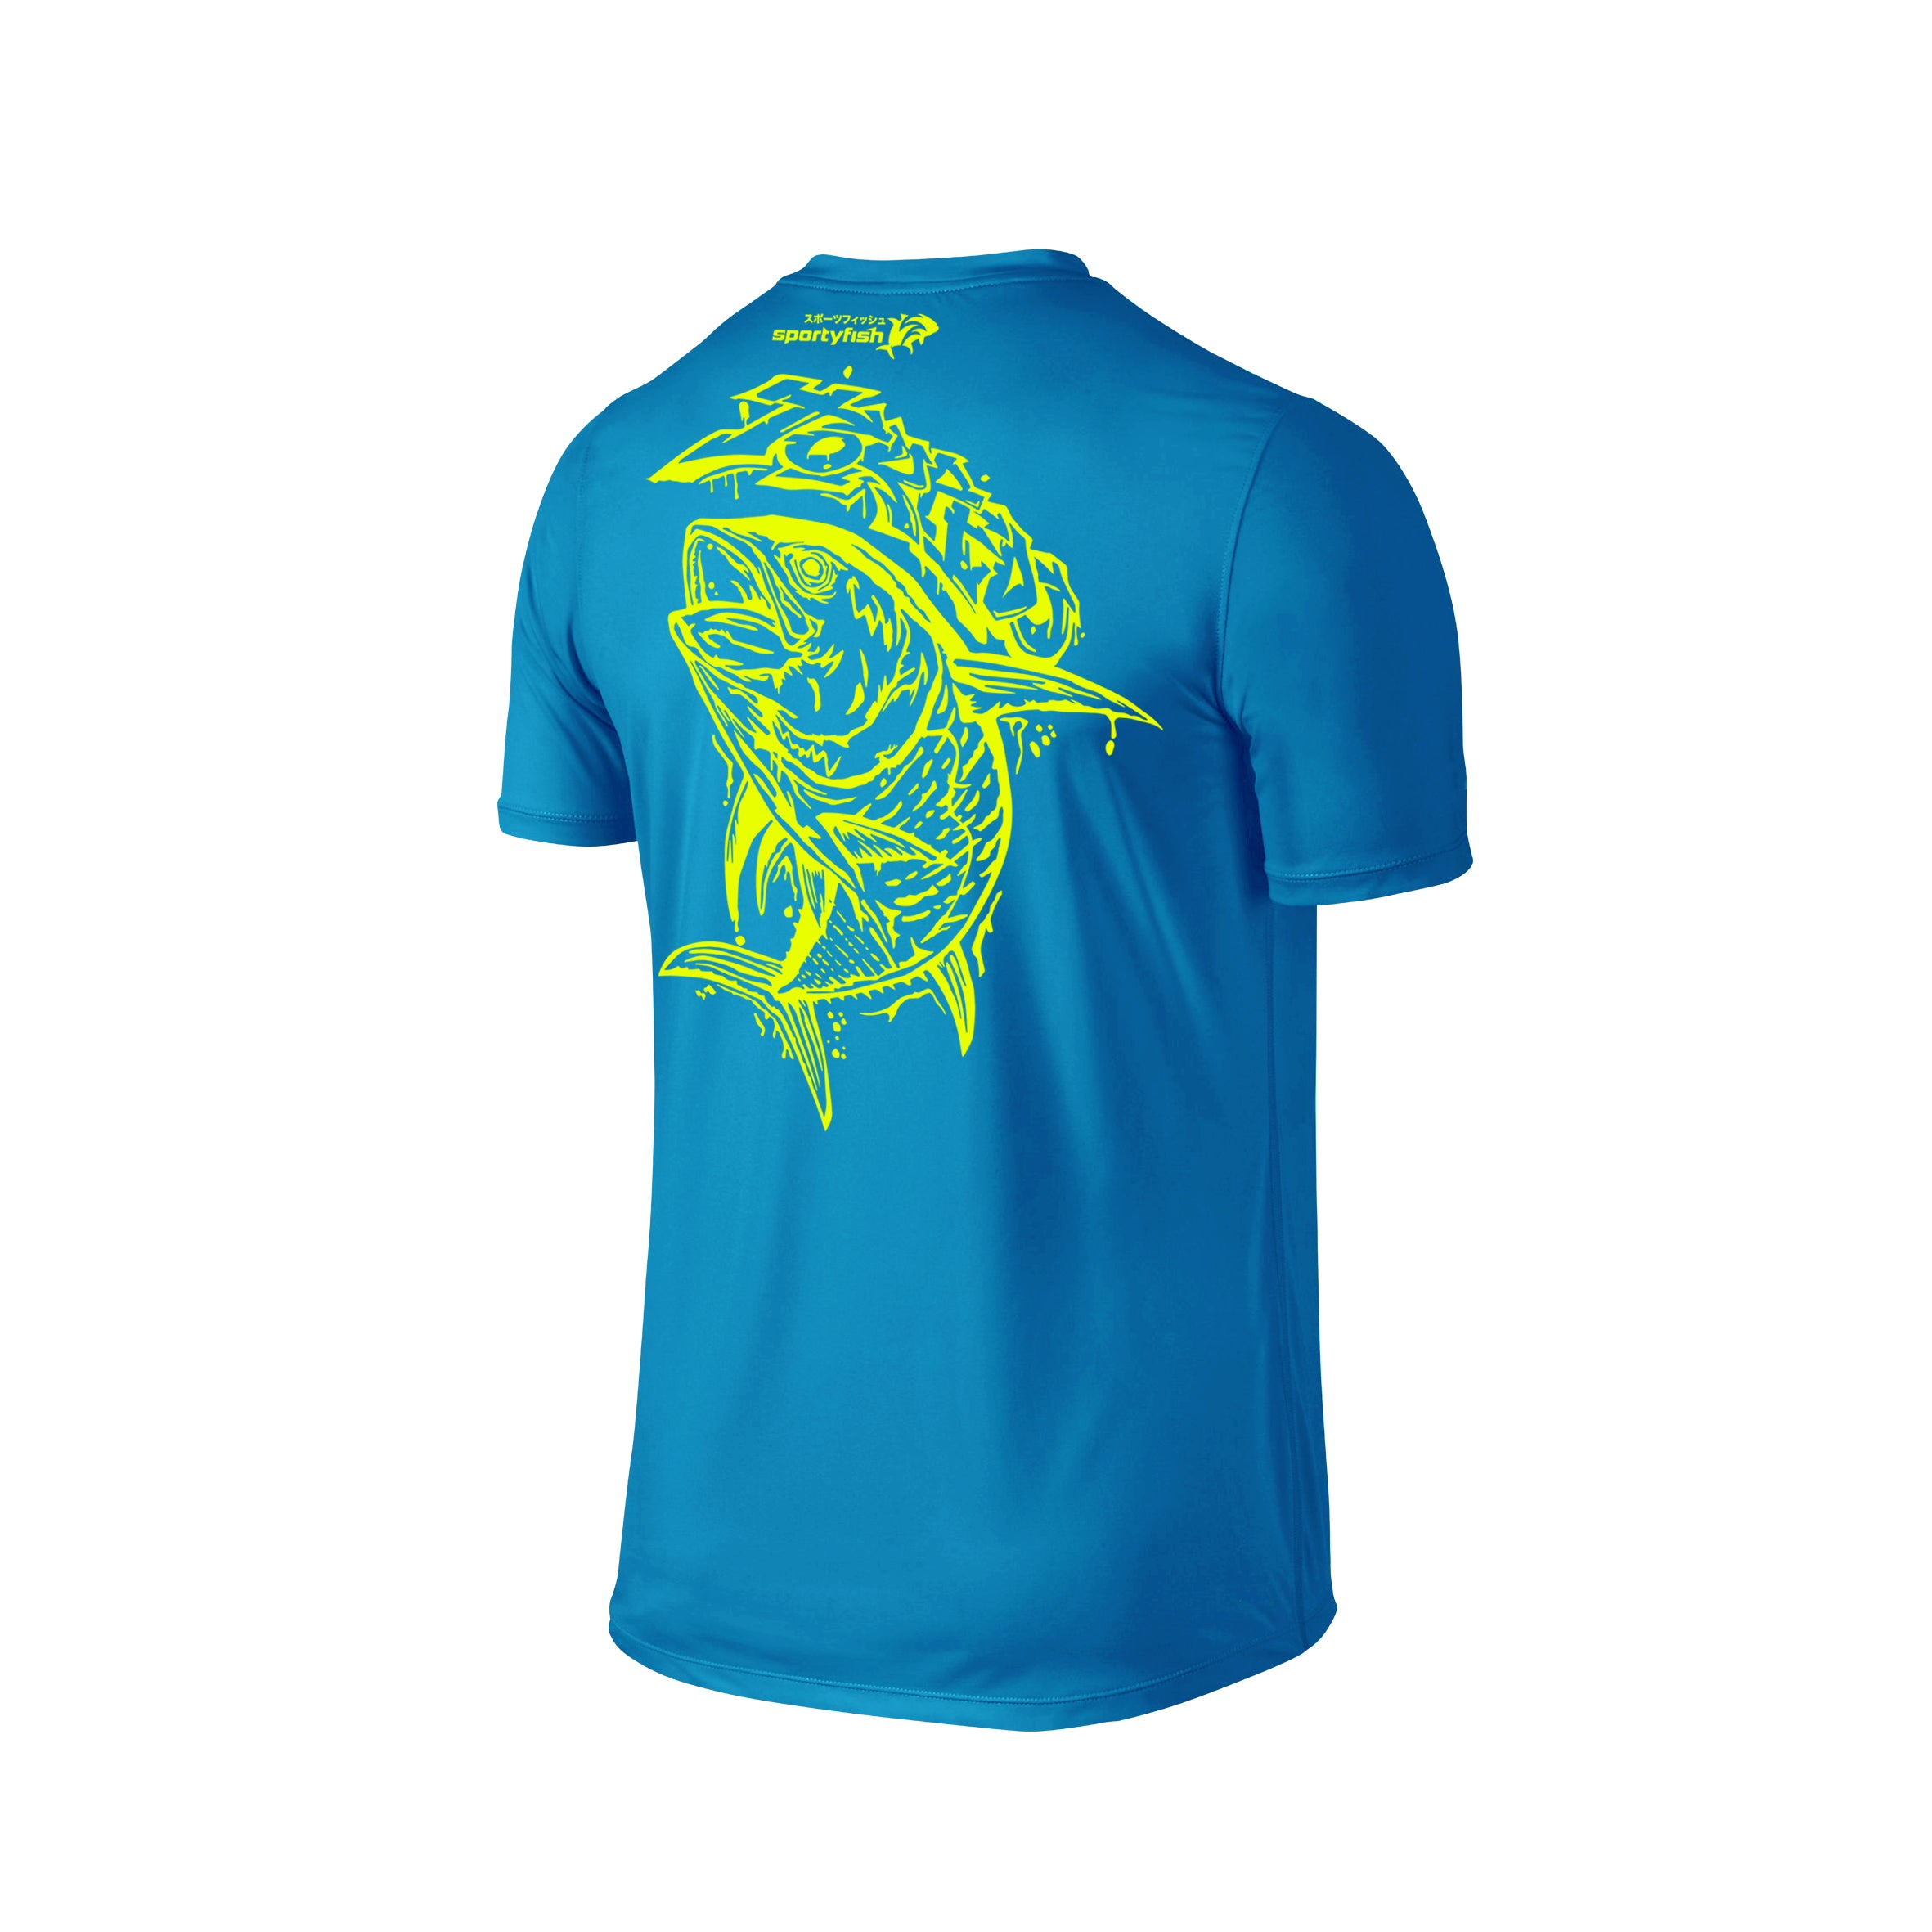 Wildstyle Graffiti Series Turquoise T-shirt(back view)Neon Yellow: Yellowfin Tuna